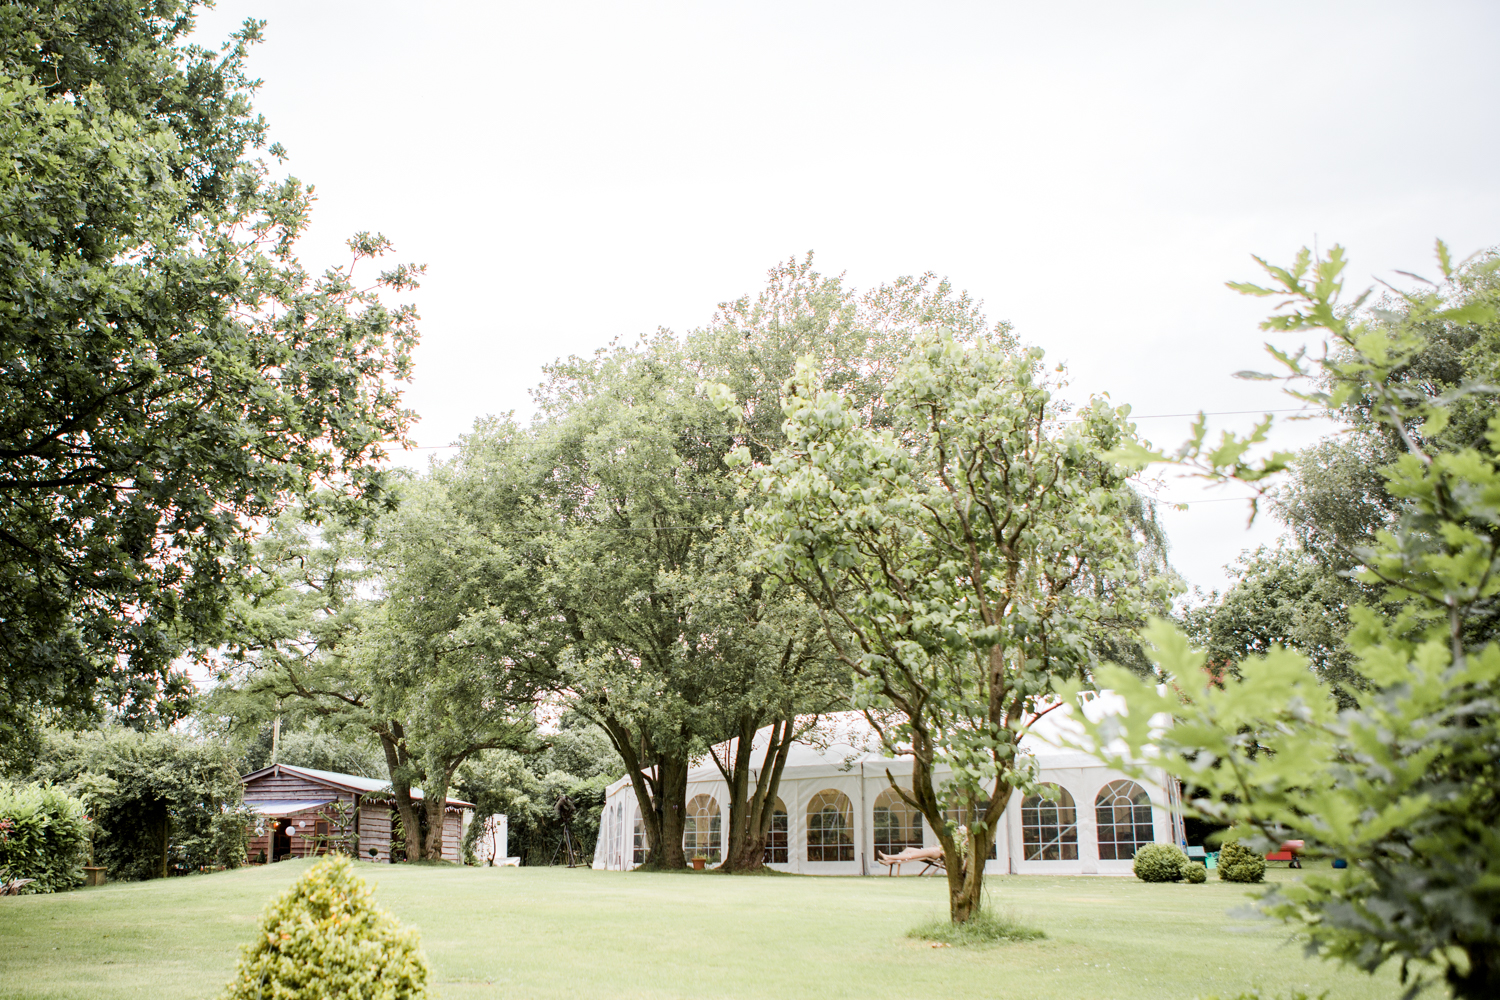 001Lotti & Dave marquee wedding Sophie Evans Photography West Midlands reportage wedding photography.jpg